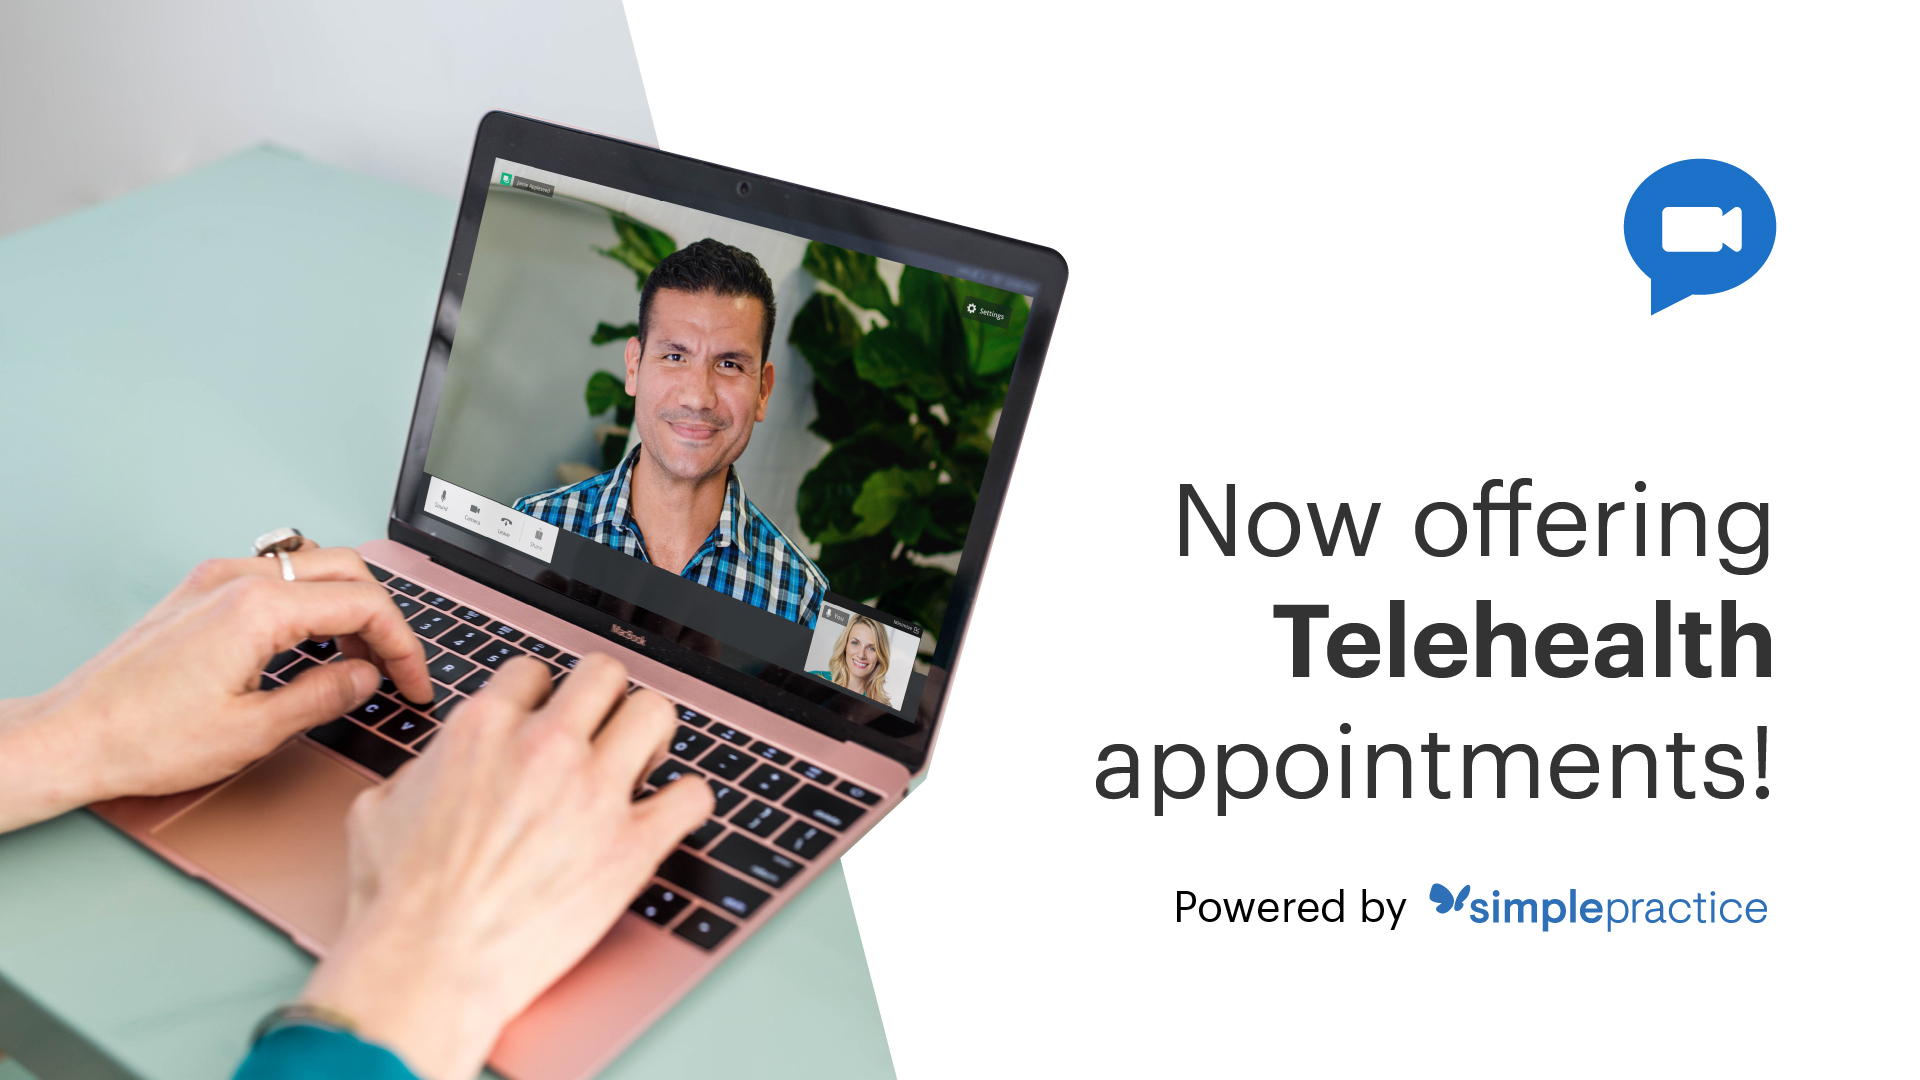 Now offering Telehealth appointments!